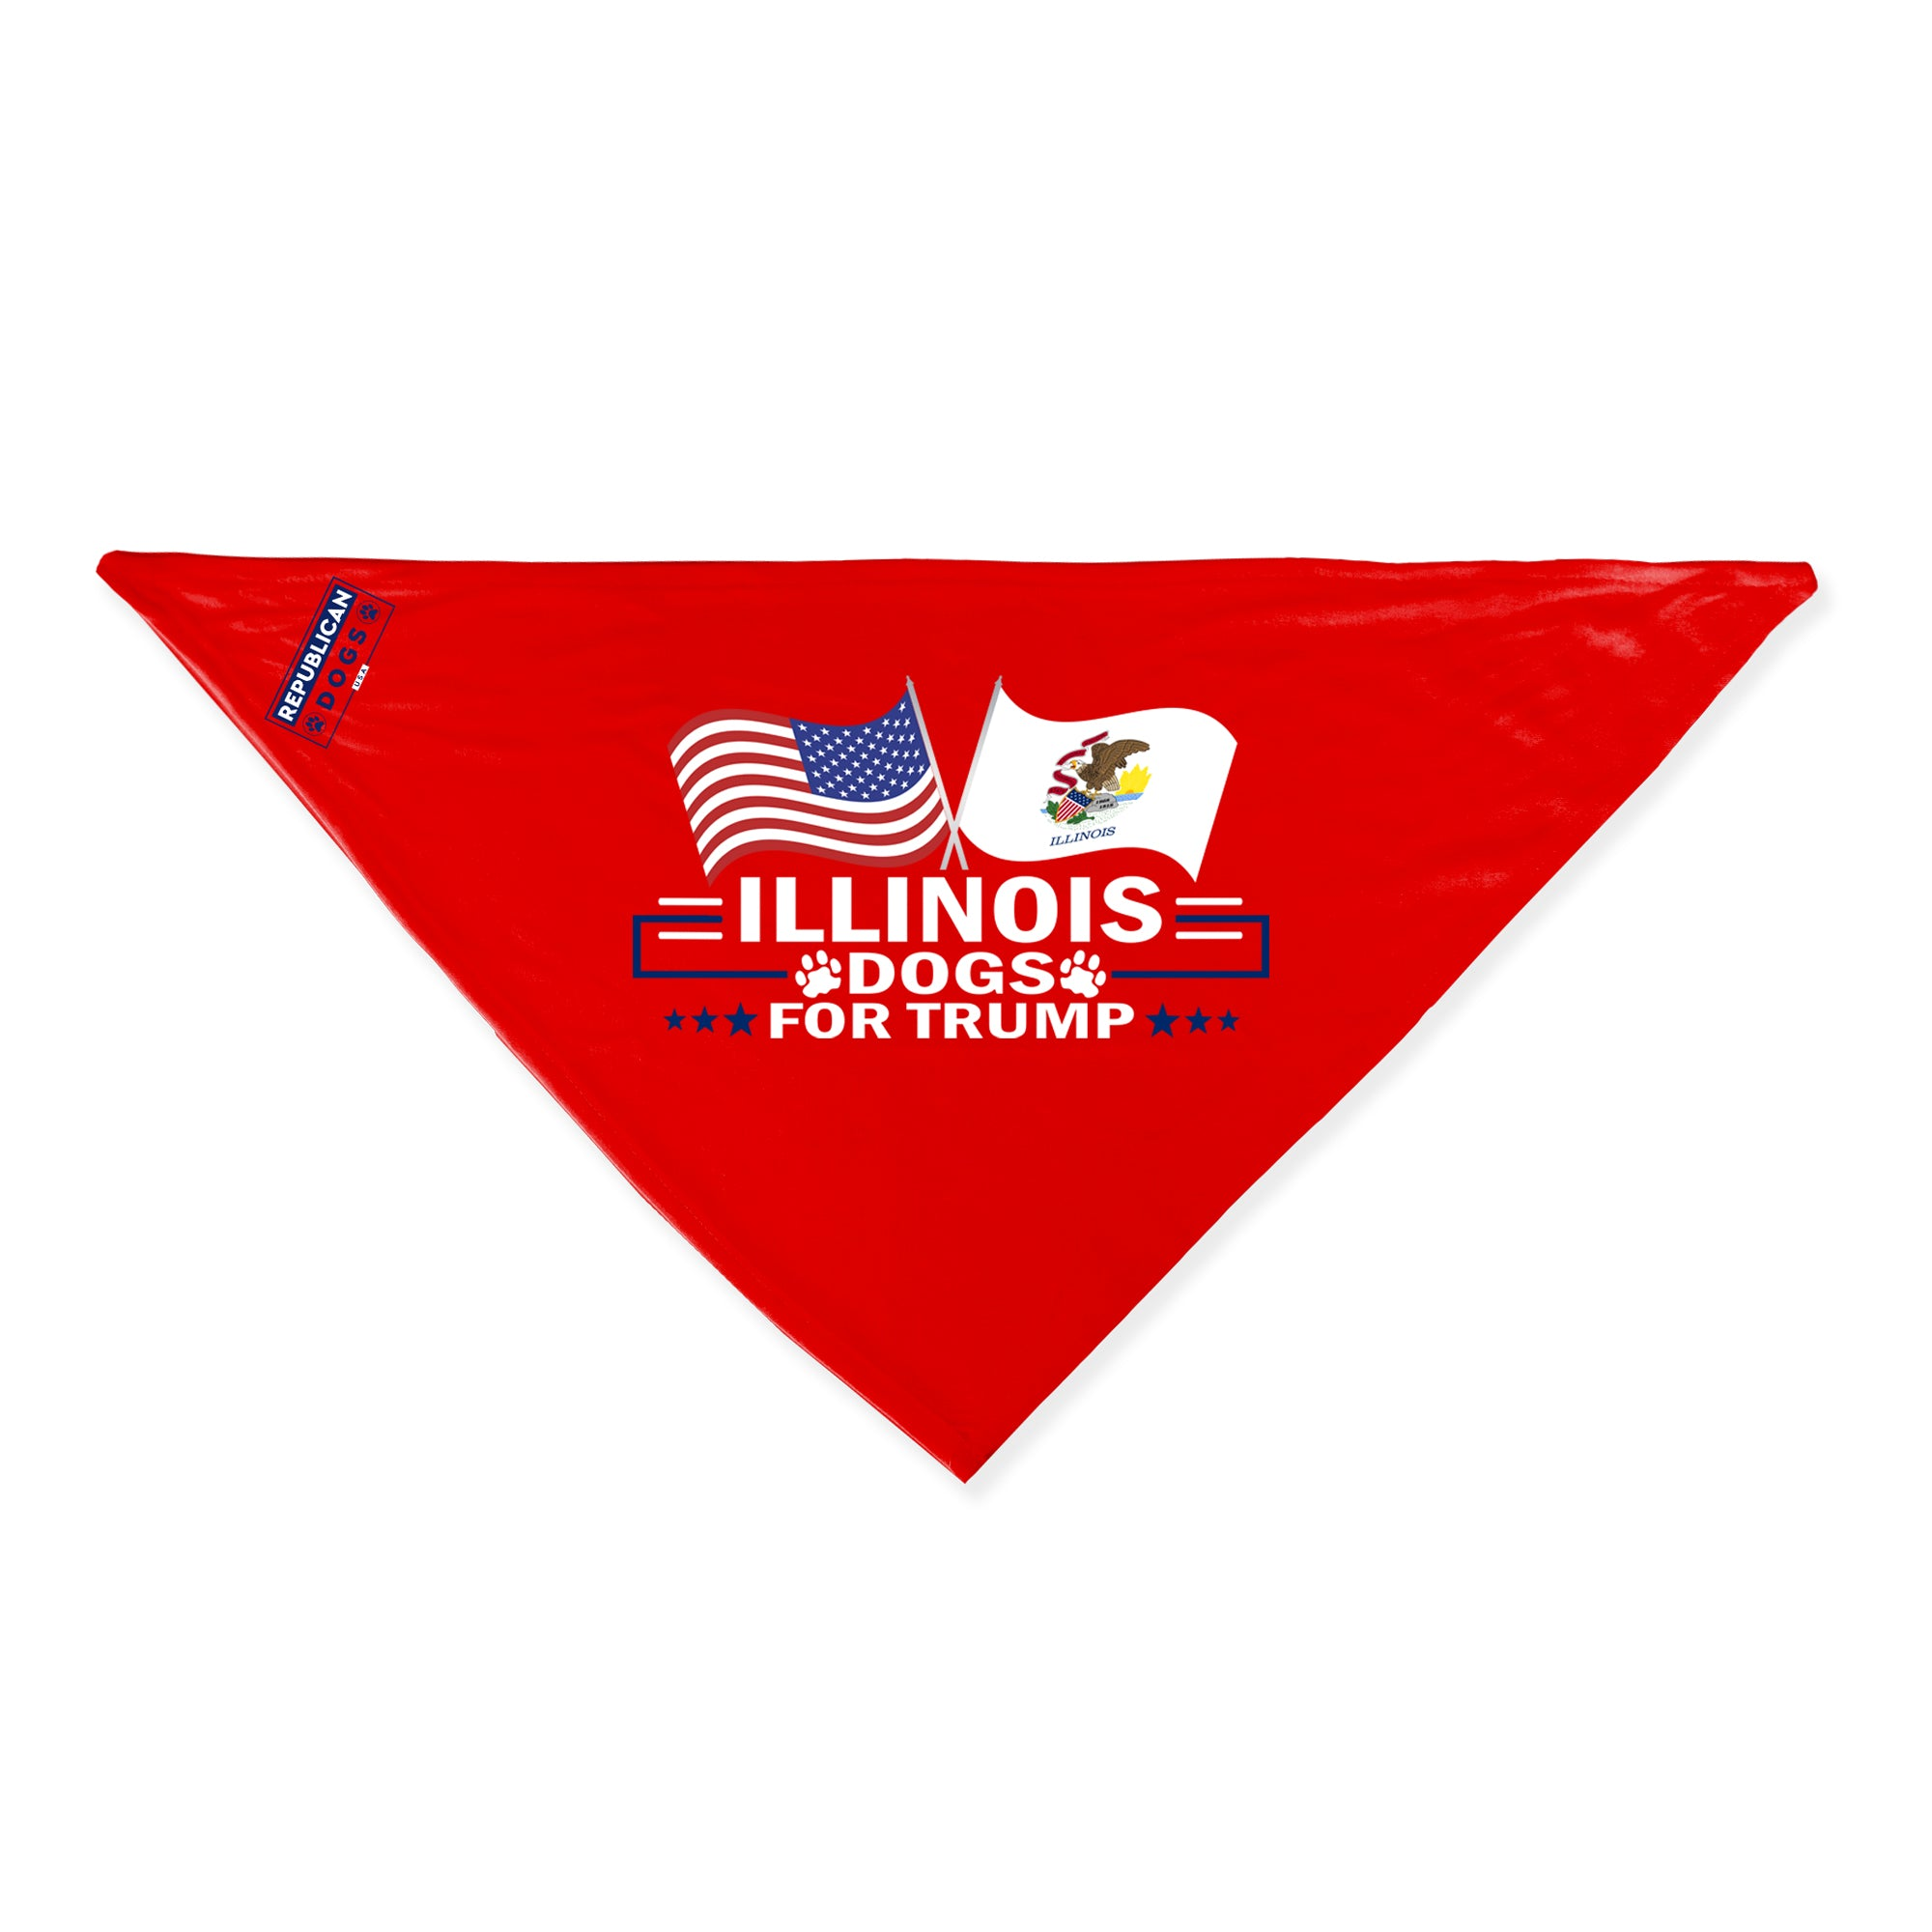 Illinois For Trump Dog Bandana Limited Edition